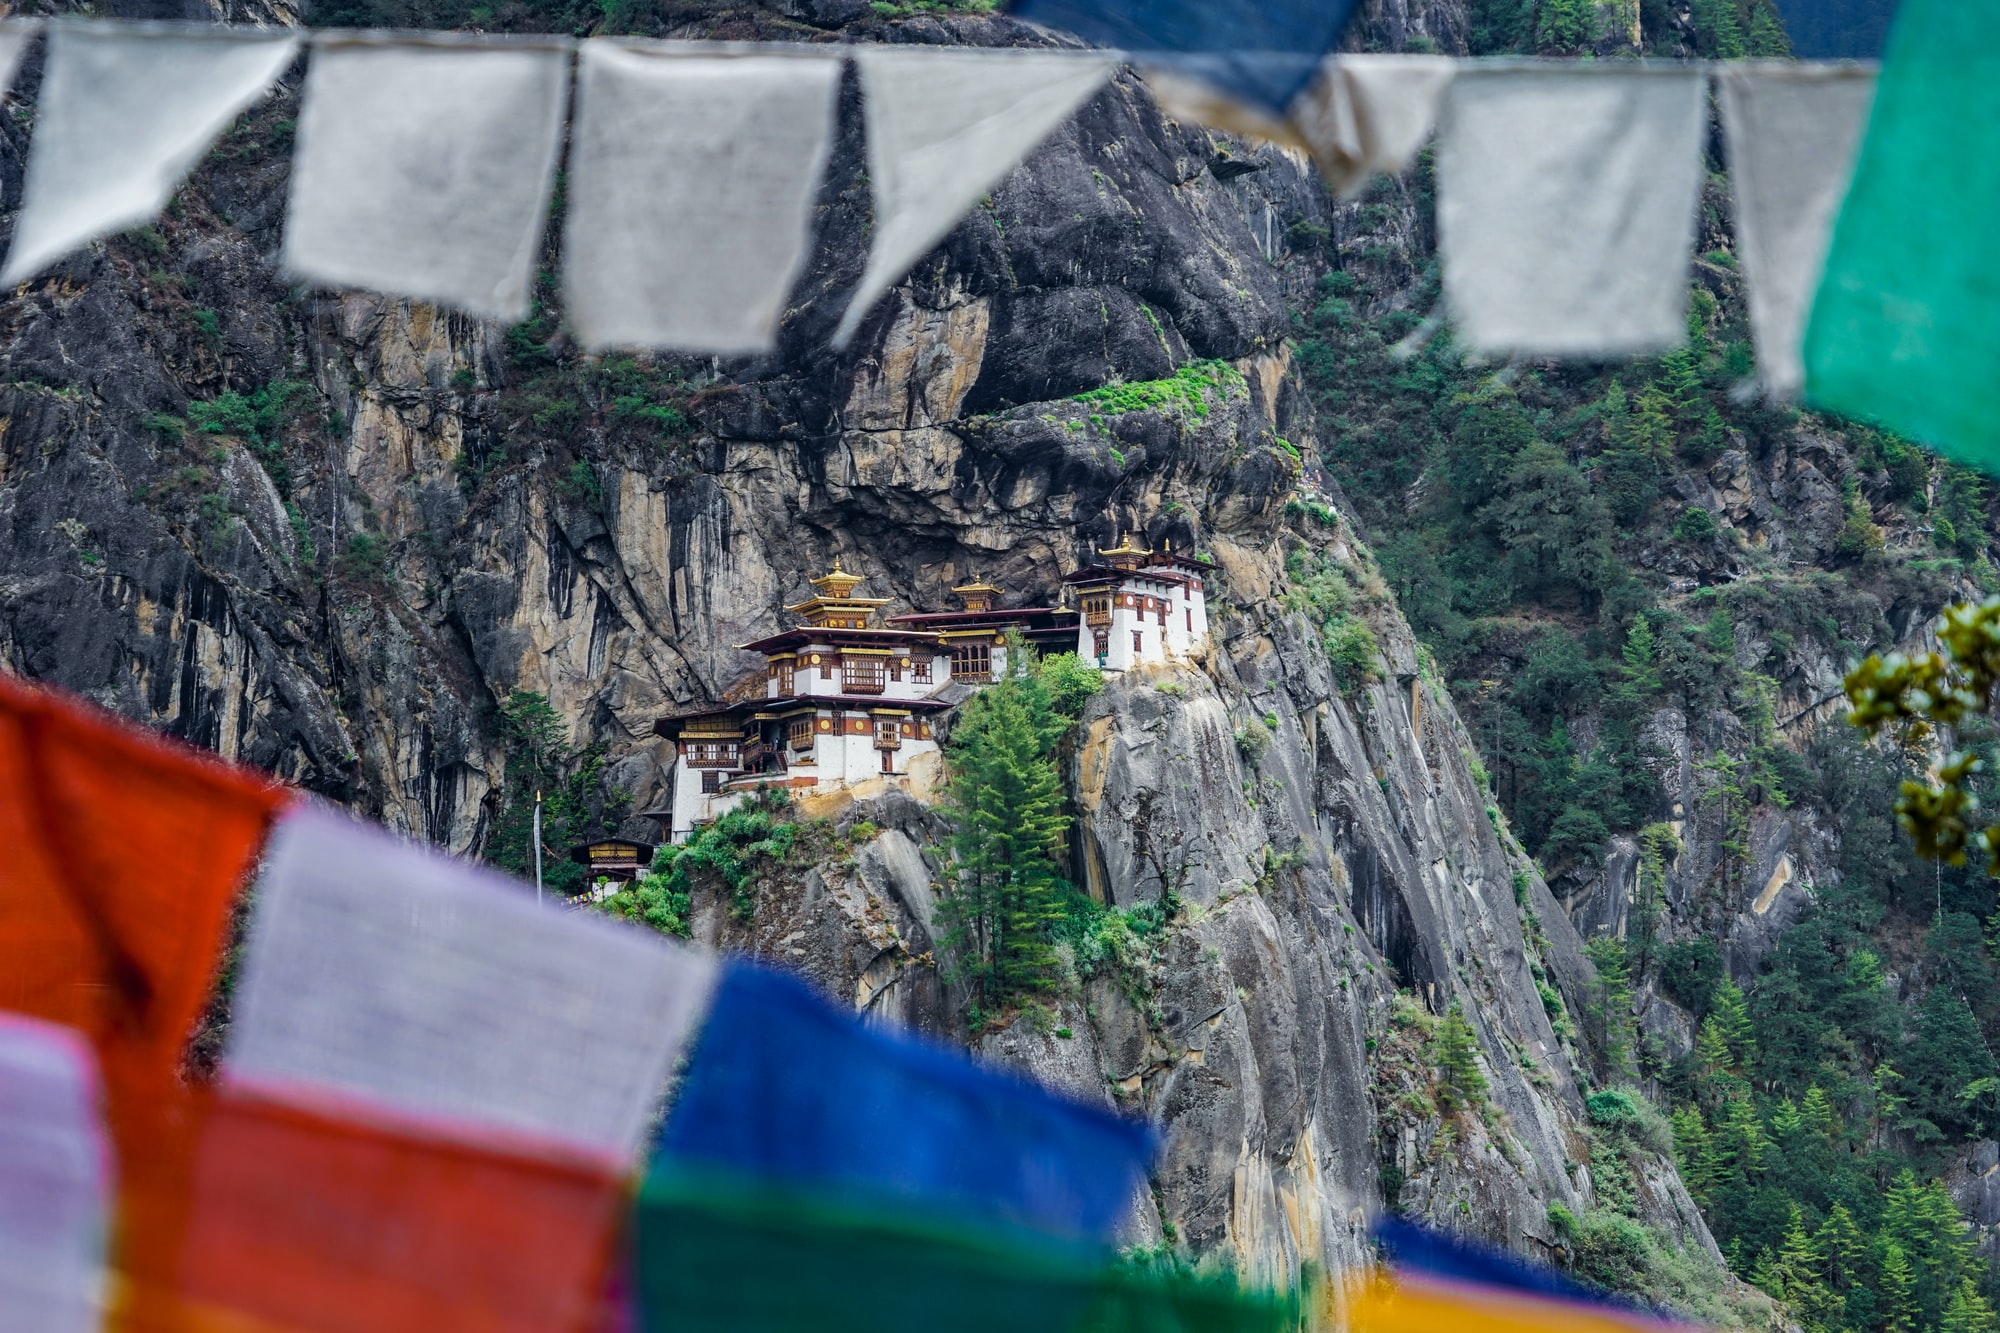 Paro Taktsang is an ancient sacred Buddhist monastery built against the cliff side in Paro, Bhutan. It was first built in 1692. It is a popular pilgrimage sites among the Buddhists and a top tourist destination in Bhutan.